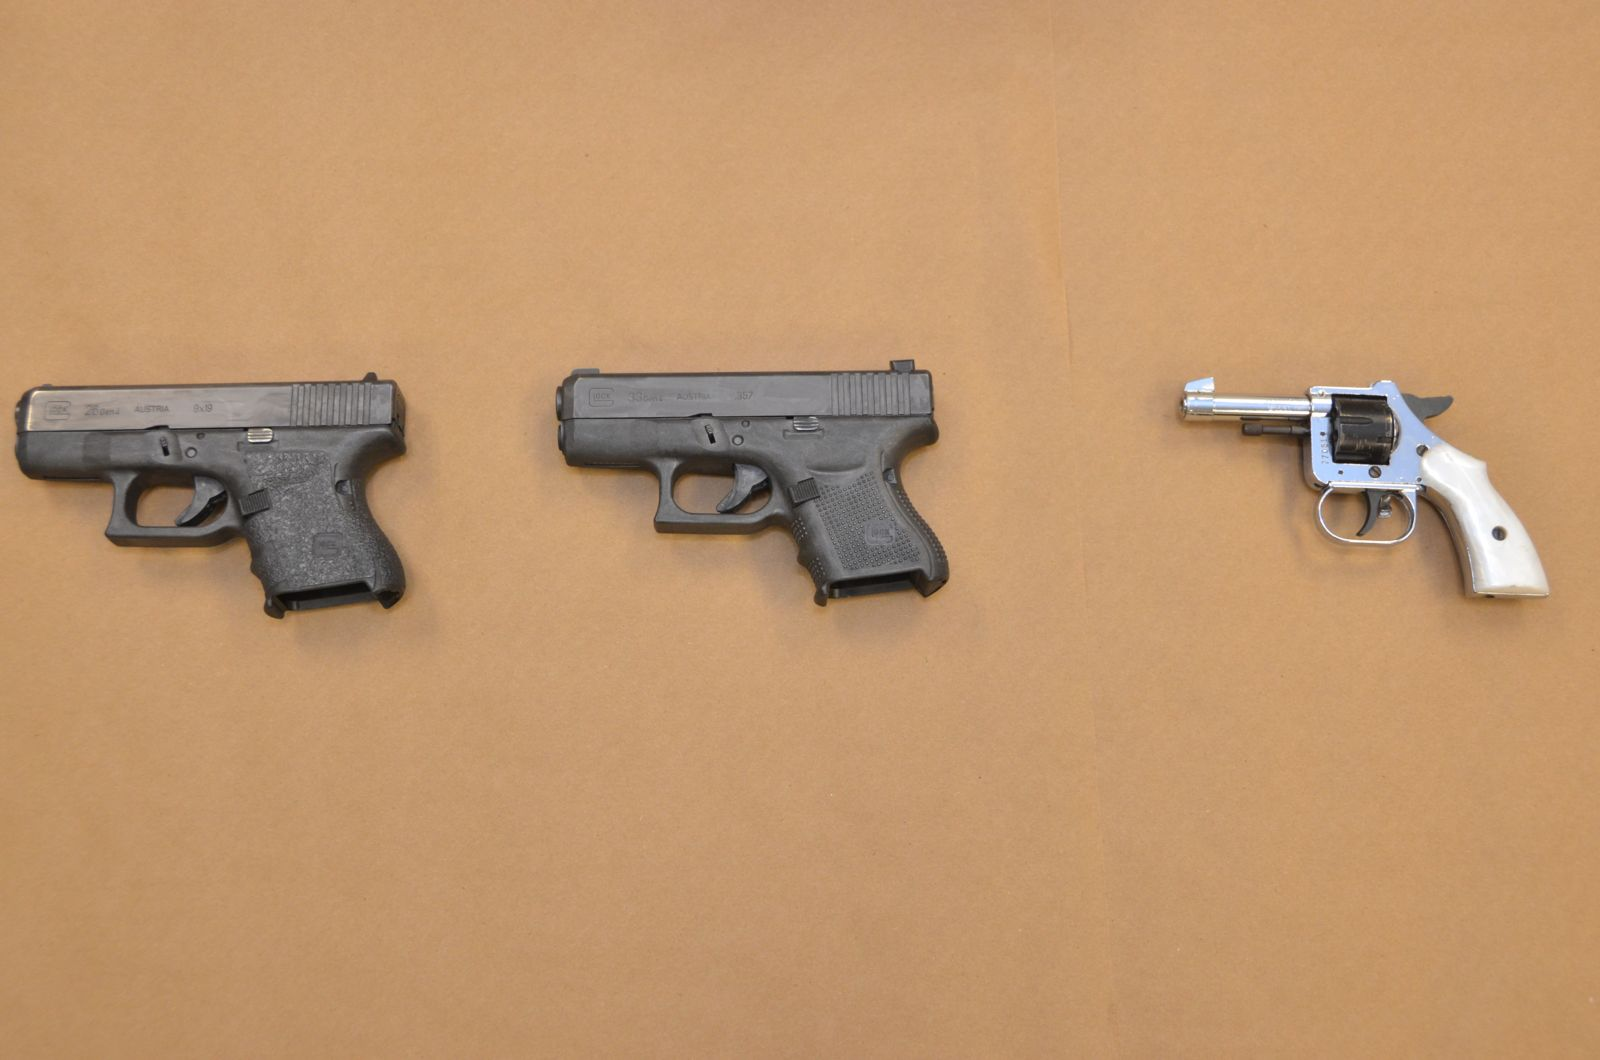 Loaded and Locked Up: Three Local Teens Arrested for Possession of Firearms